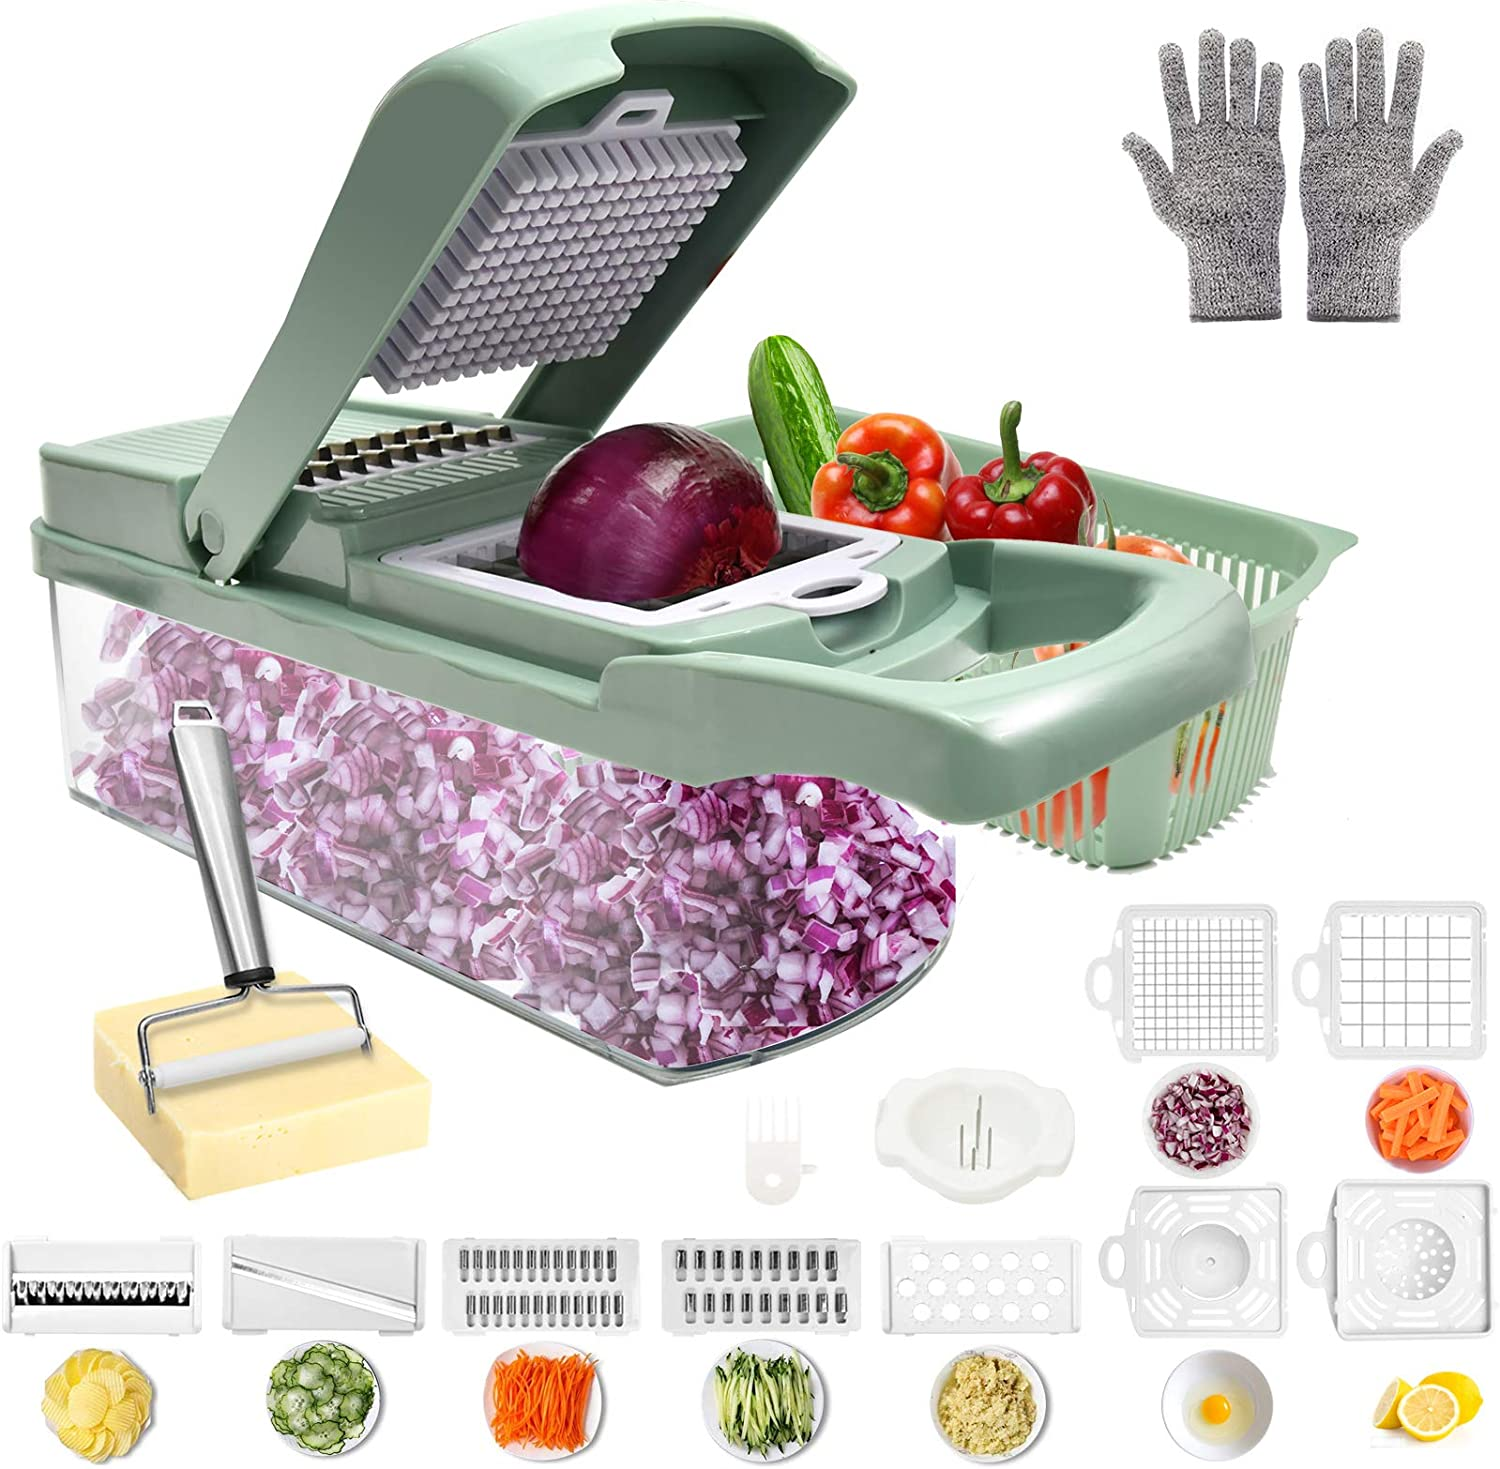 Onion Choppe Mandoline Slicer,French Fry Cutter with Cut-Resistant Gloves & Stainless Steel Cheese Slicer,12-in-1 Food Chopper Vegetable Spiralizer,Chopper Vegetable Cutter,Salad Chopper